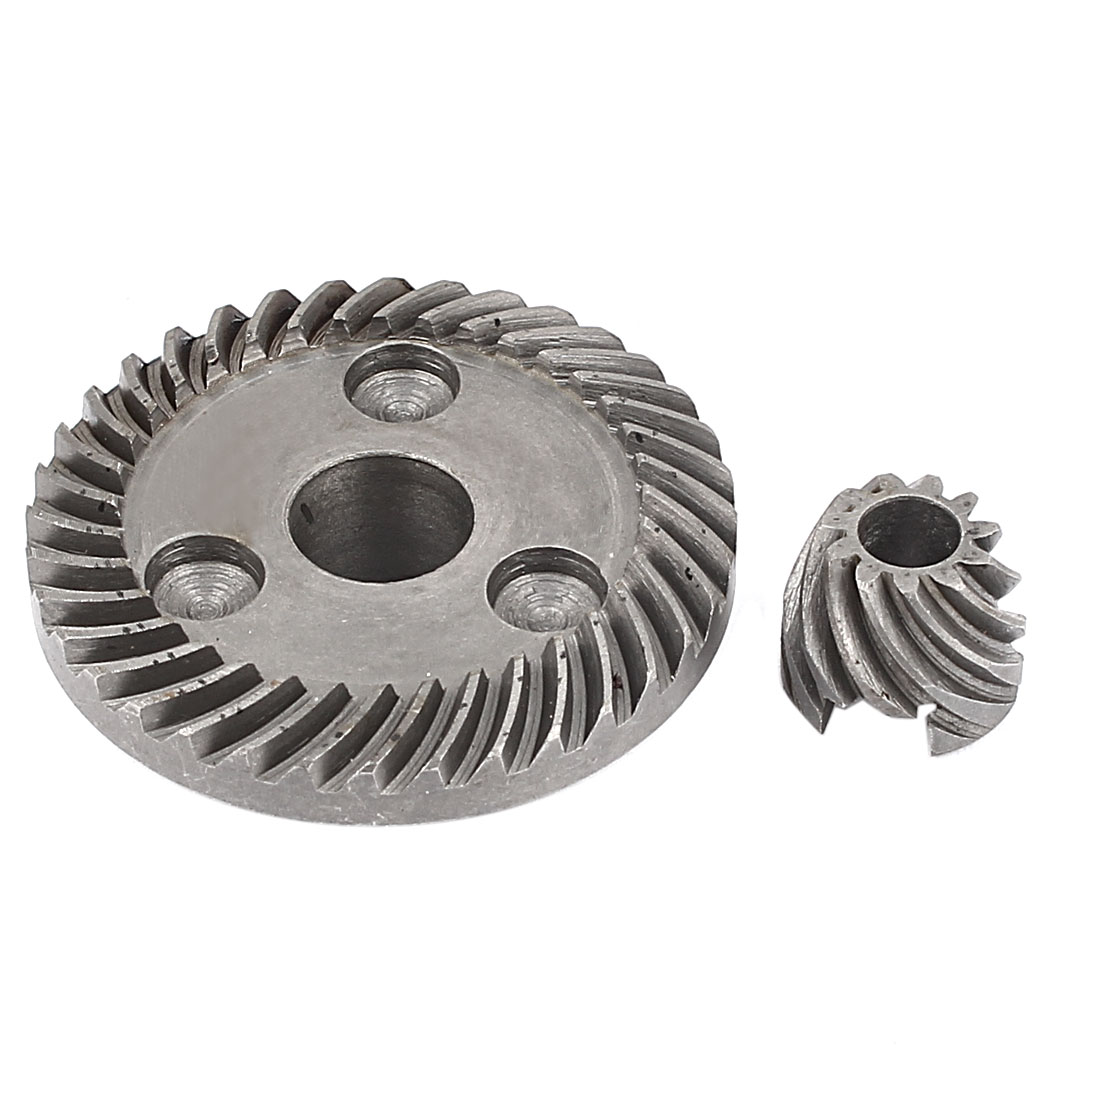 Replacement Metal Electric Angle Grinder Spiral Bevel Pinion Gear Set Dark Gray